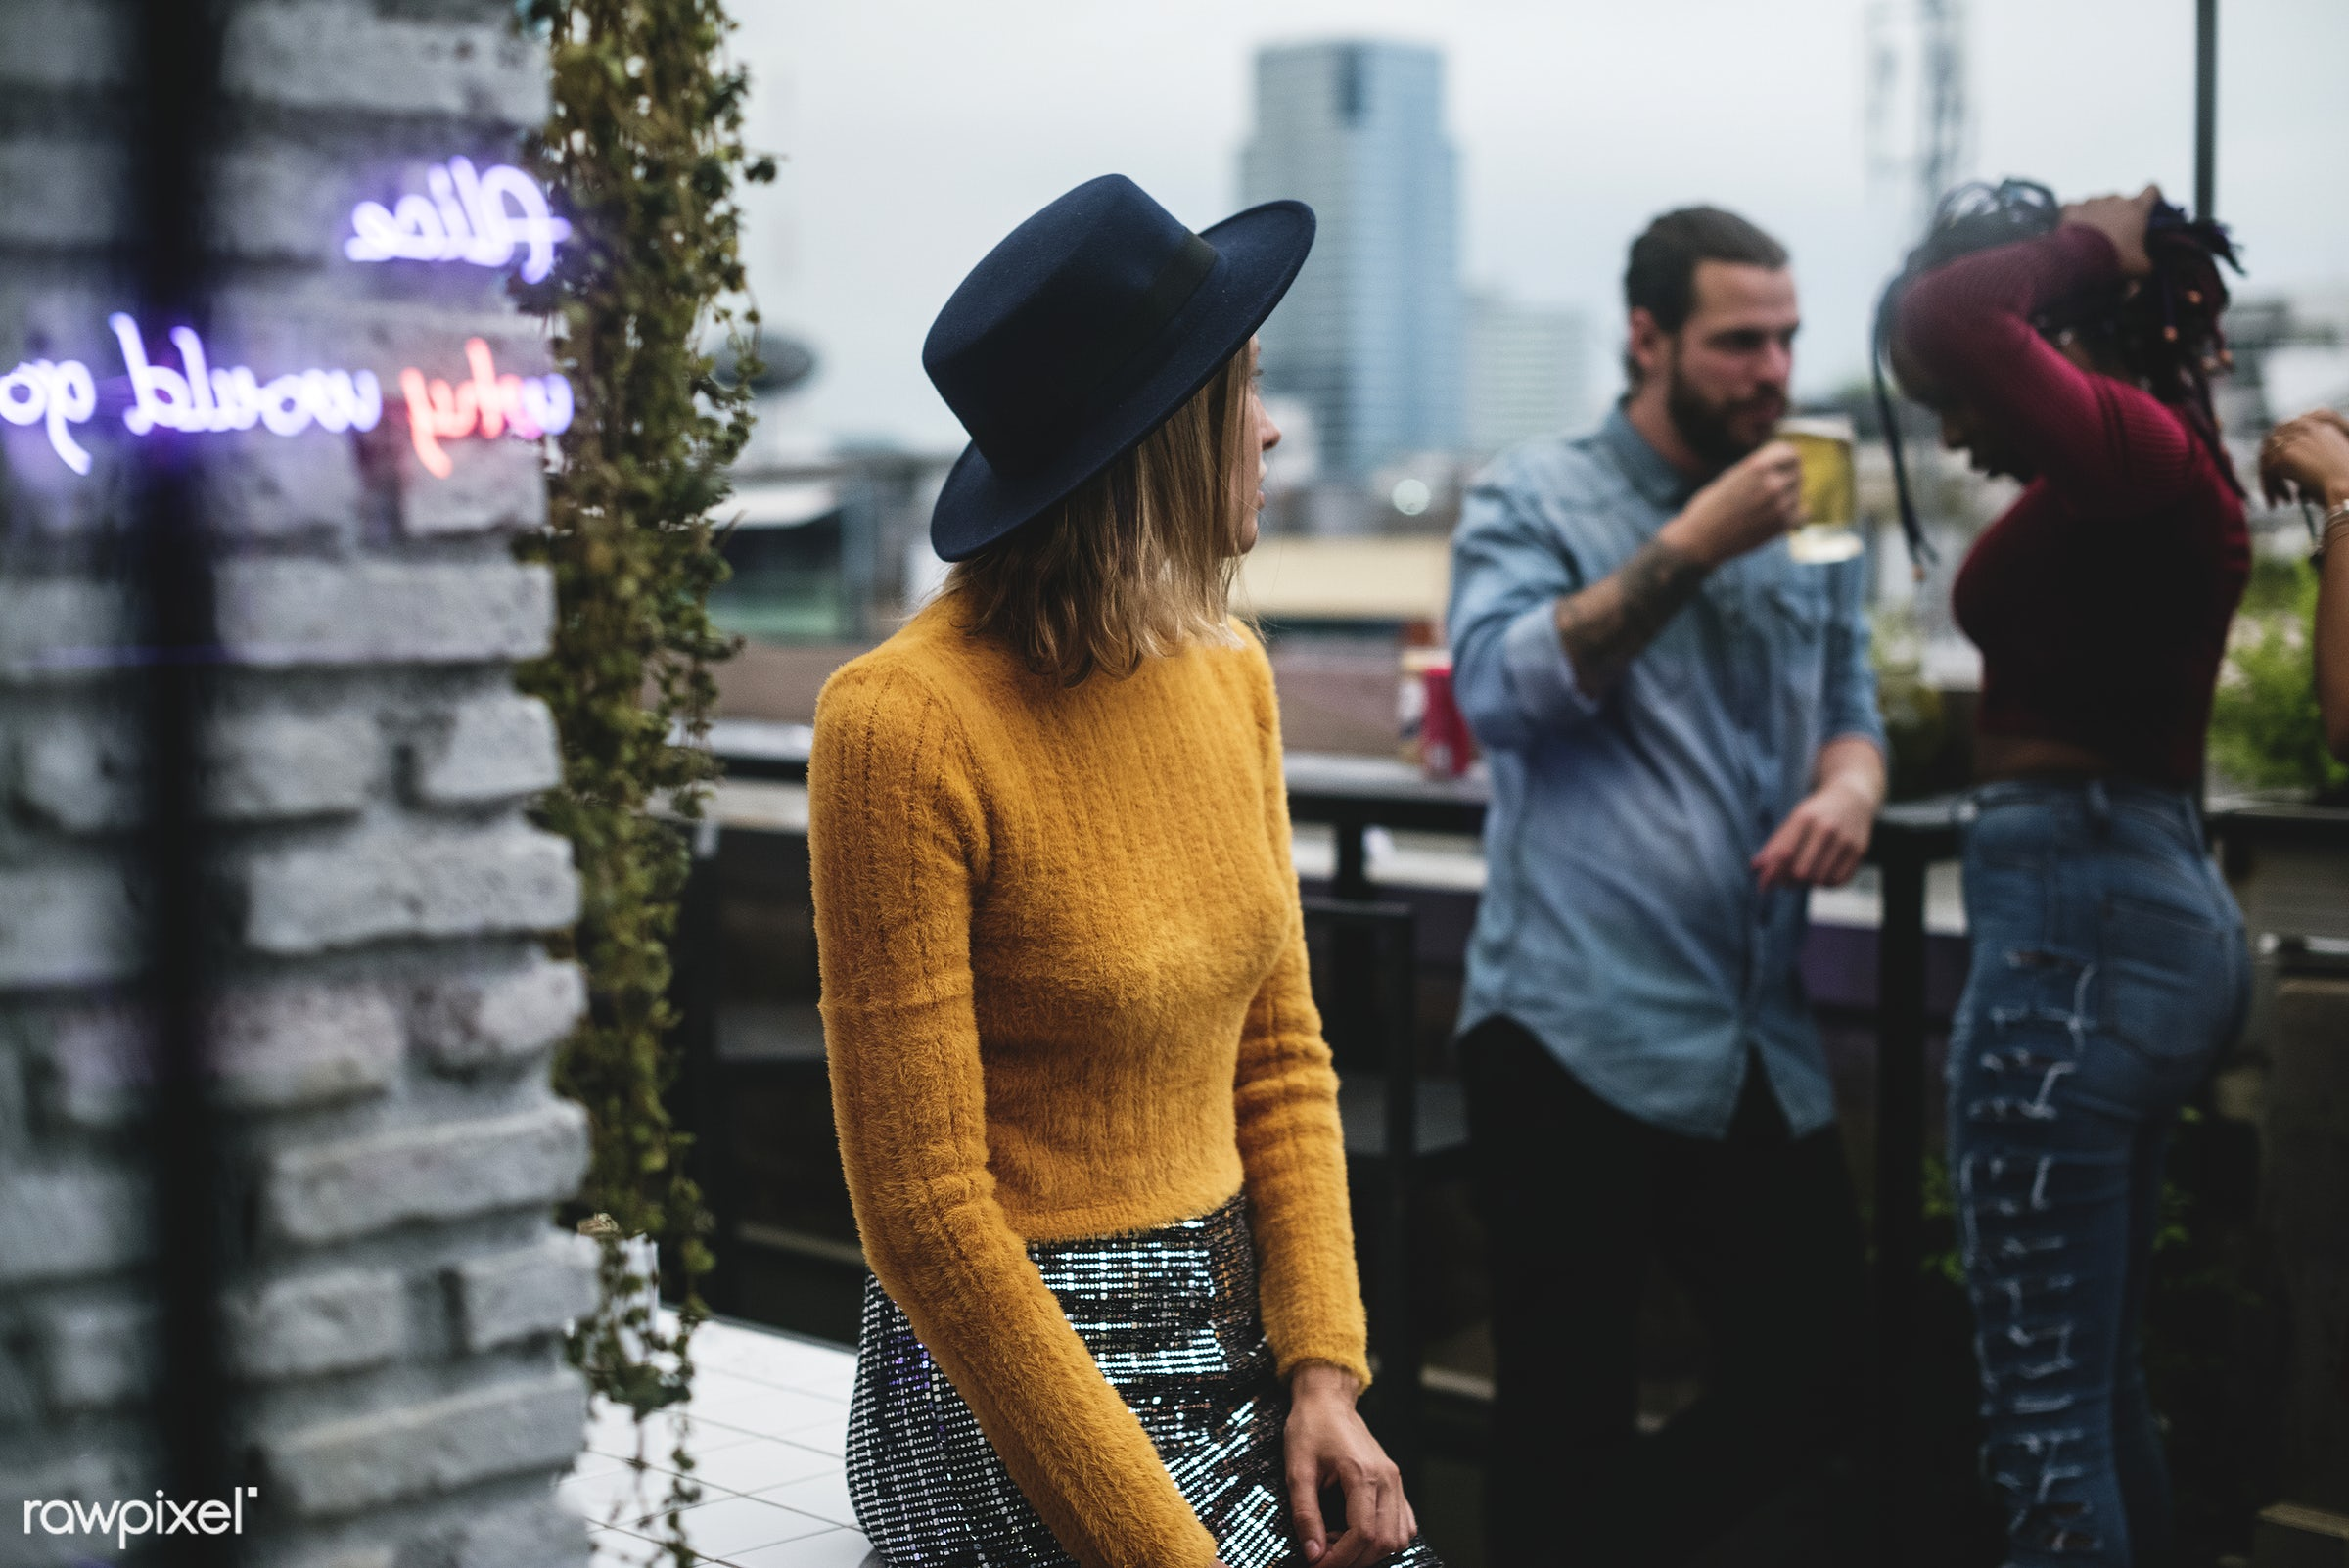 People having fun in a party - new year, rooftop, 2018, bar, birthday, birthday party, celebrate, celebration, fun, glam,...